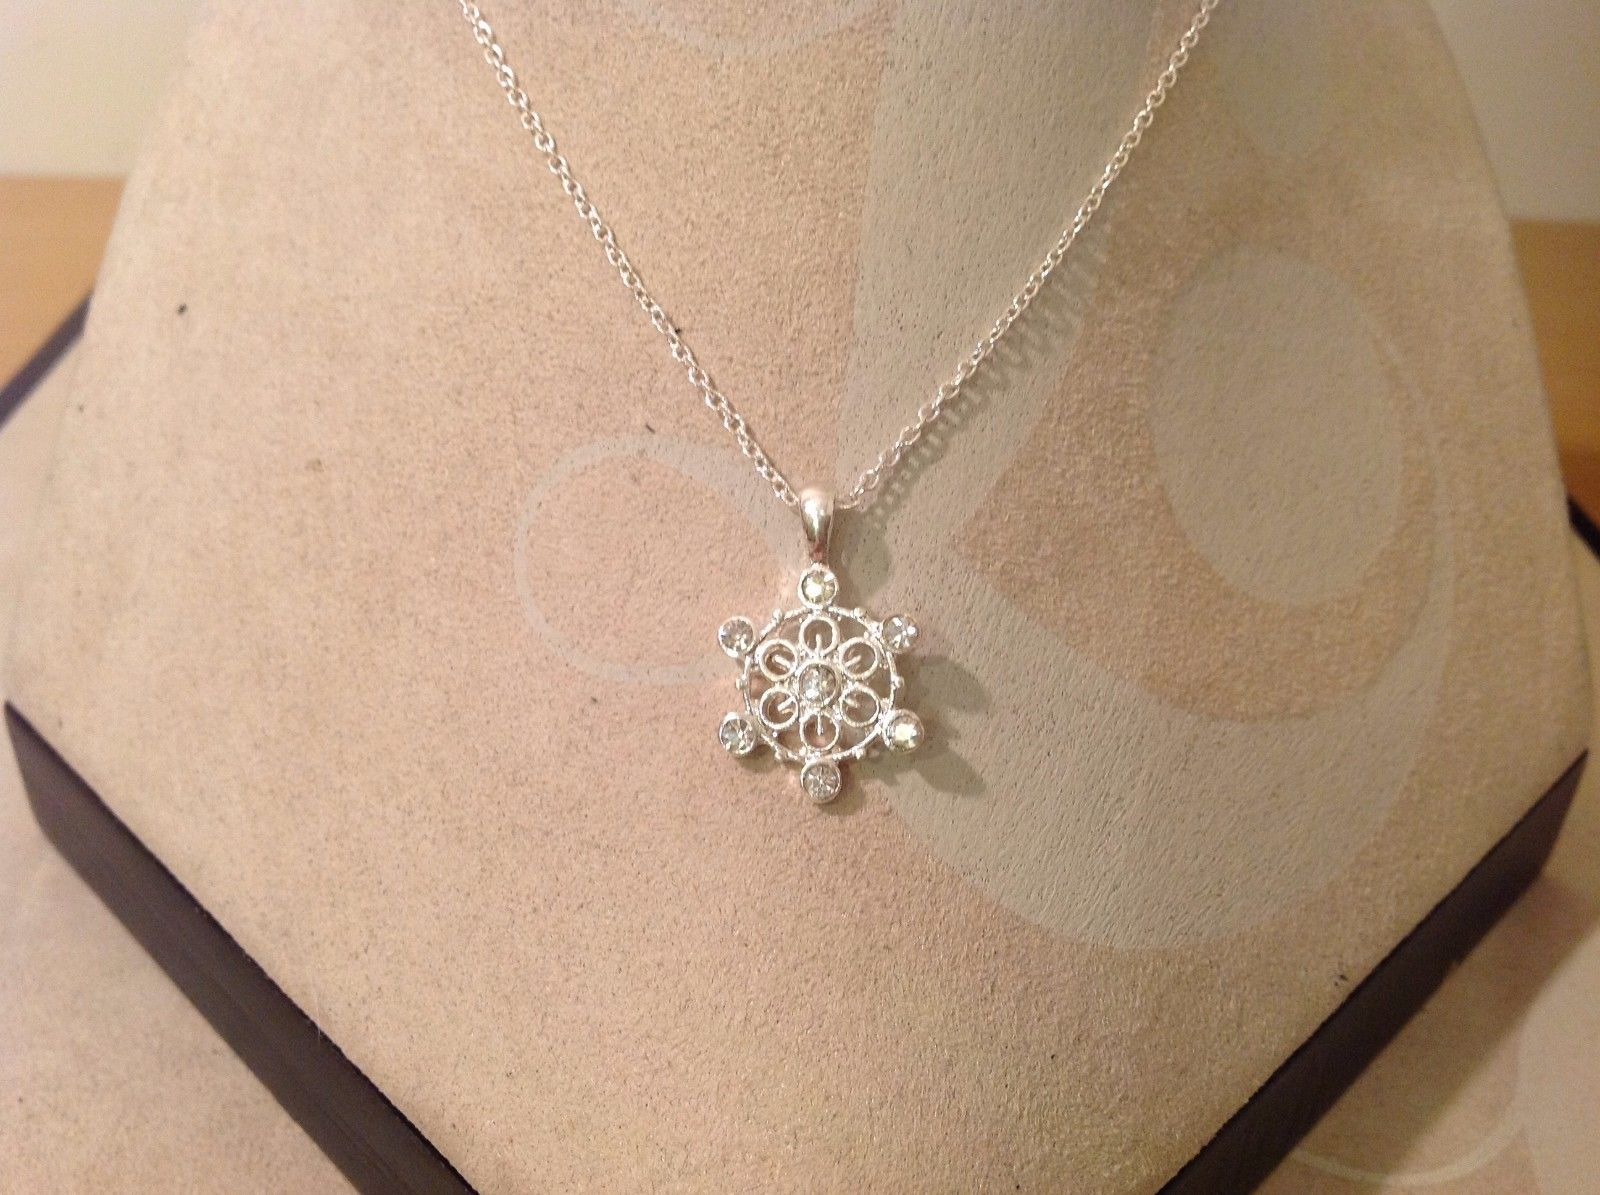 Snowflake Fashion Necklace  w Crystals gift message Great Secret Santa Prezzie